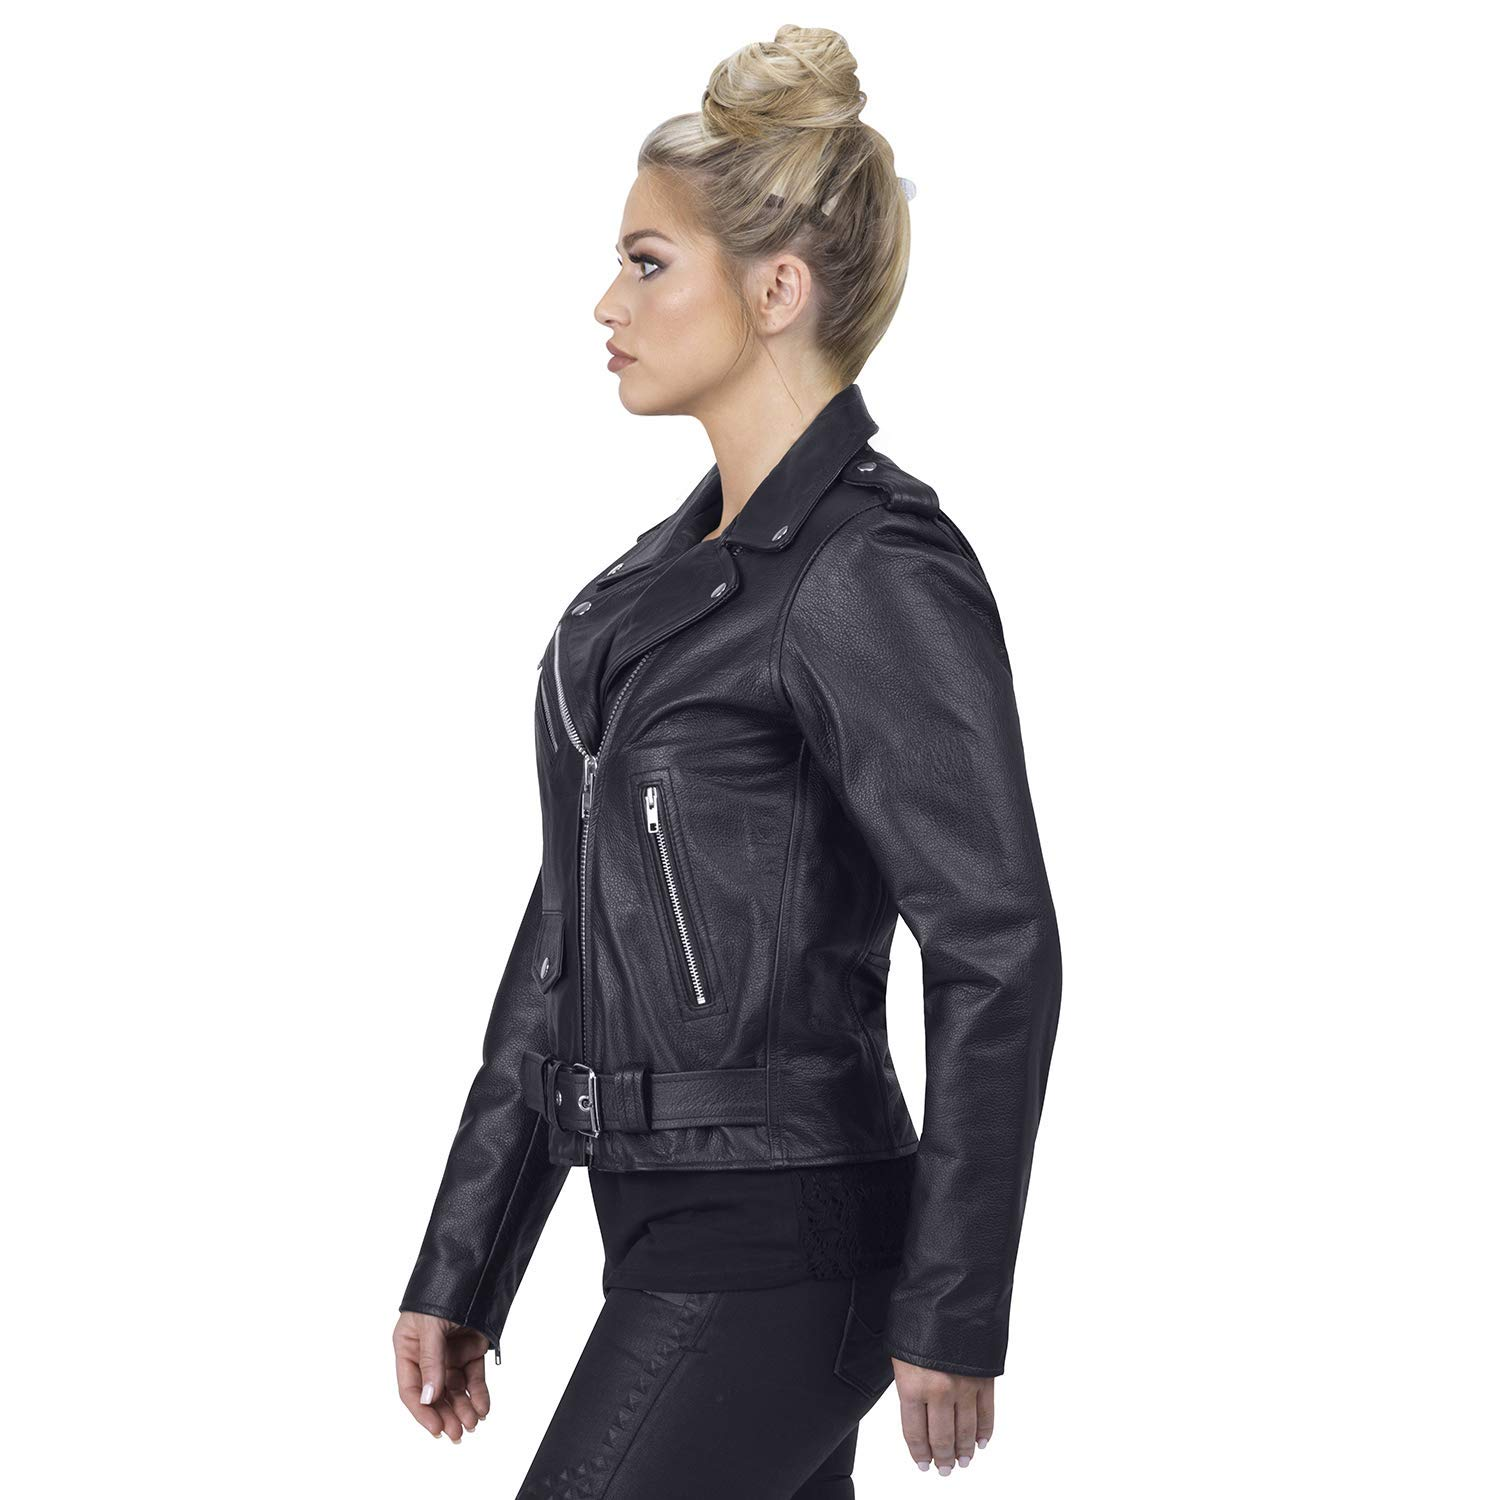 Fashionable Slim Waist Viking Cycle Fire Goddess Motorcycle Jacket for Women Black Classic Cruise Premium Biker Leather for Ladies